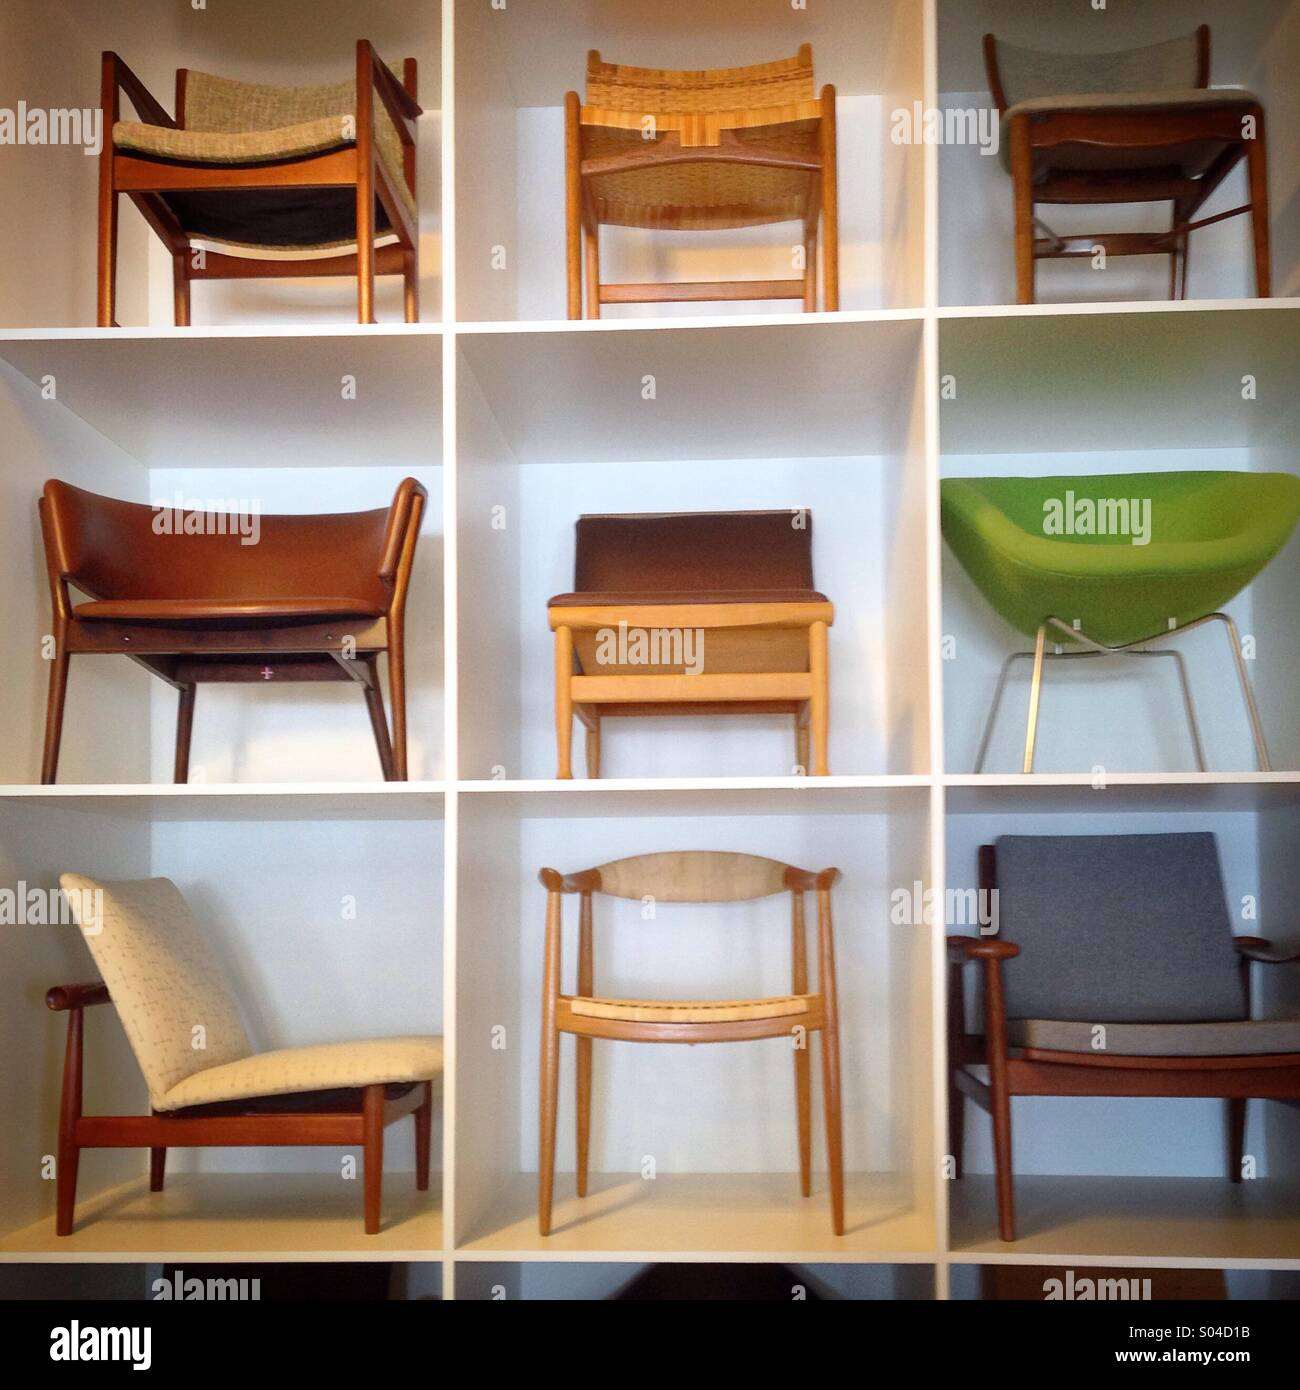 Mid century chairs - Stock Image